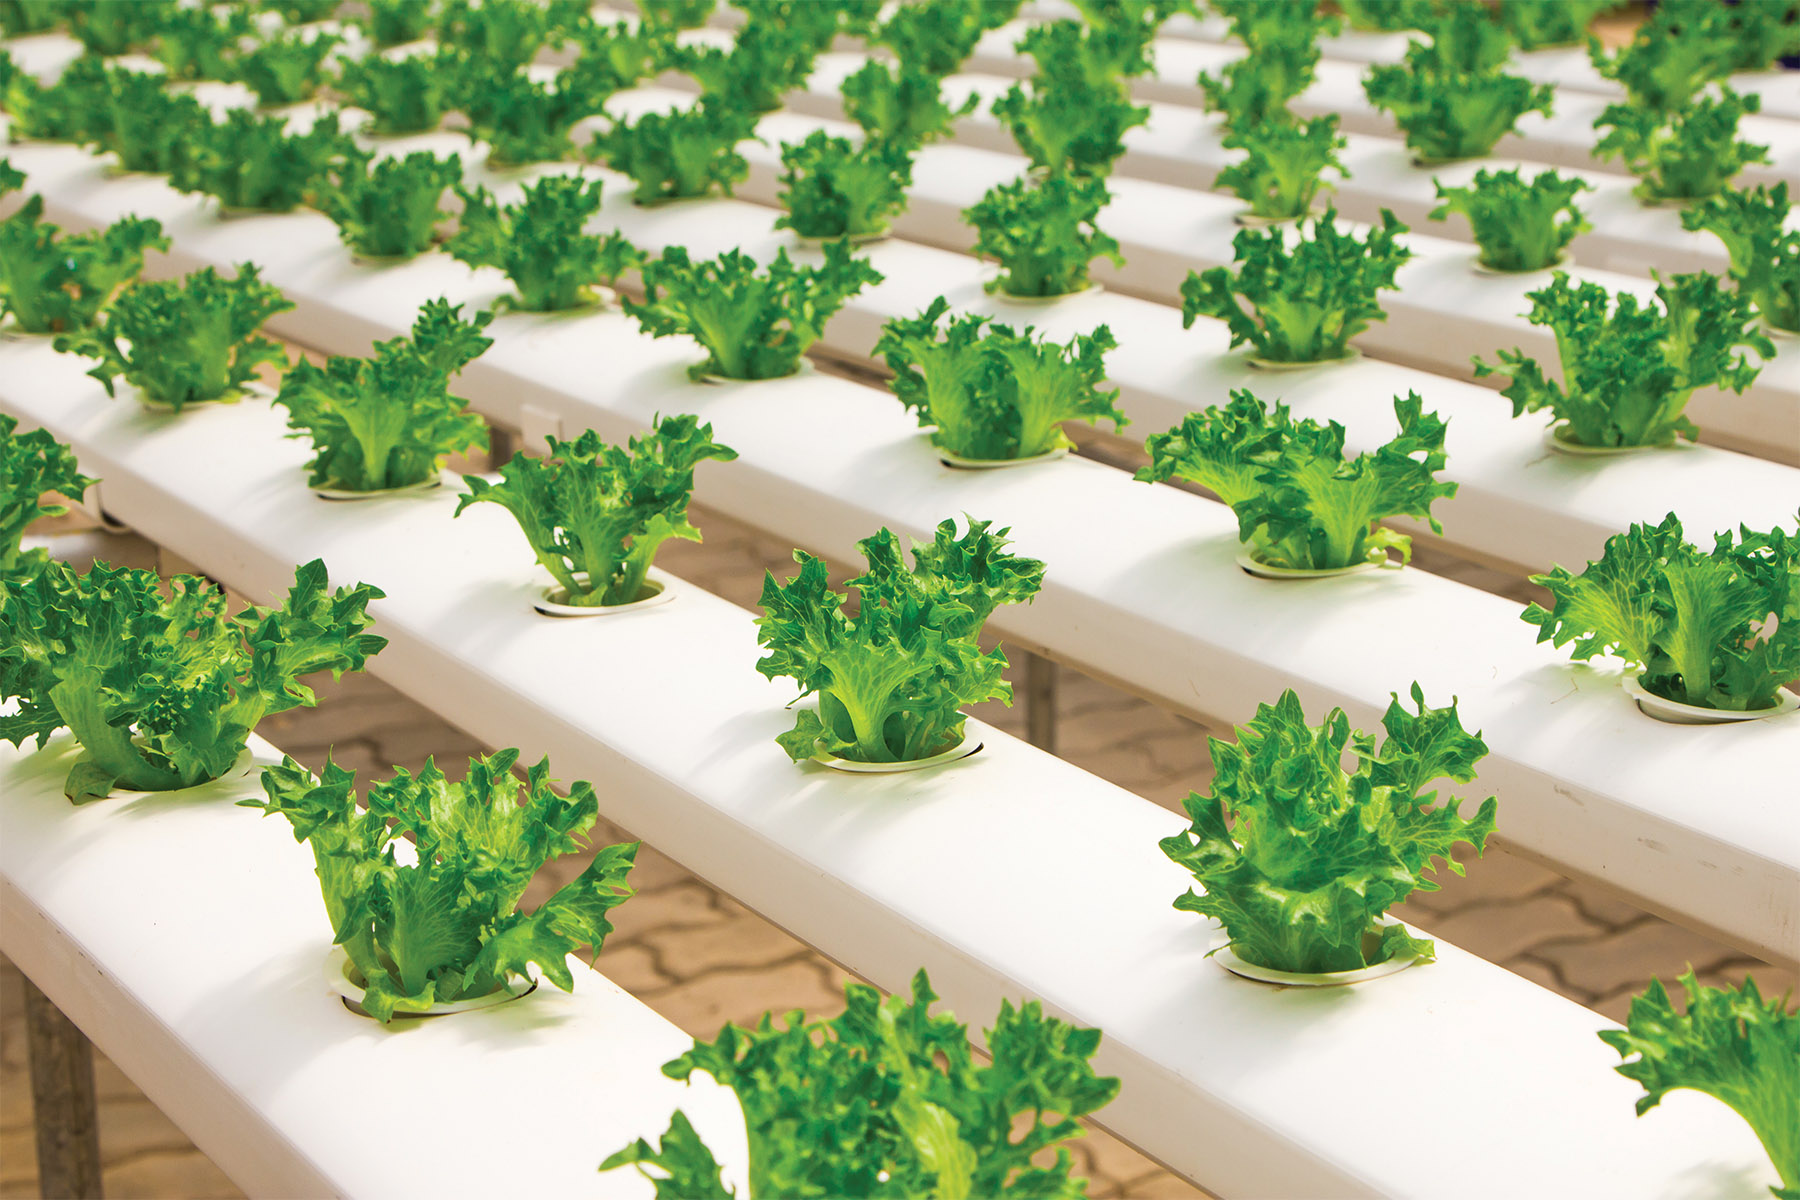 Horticultural Series LEDs Deliver Entire Spectrum from UV-C to Far-Red